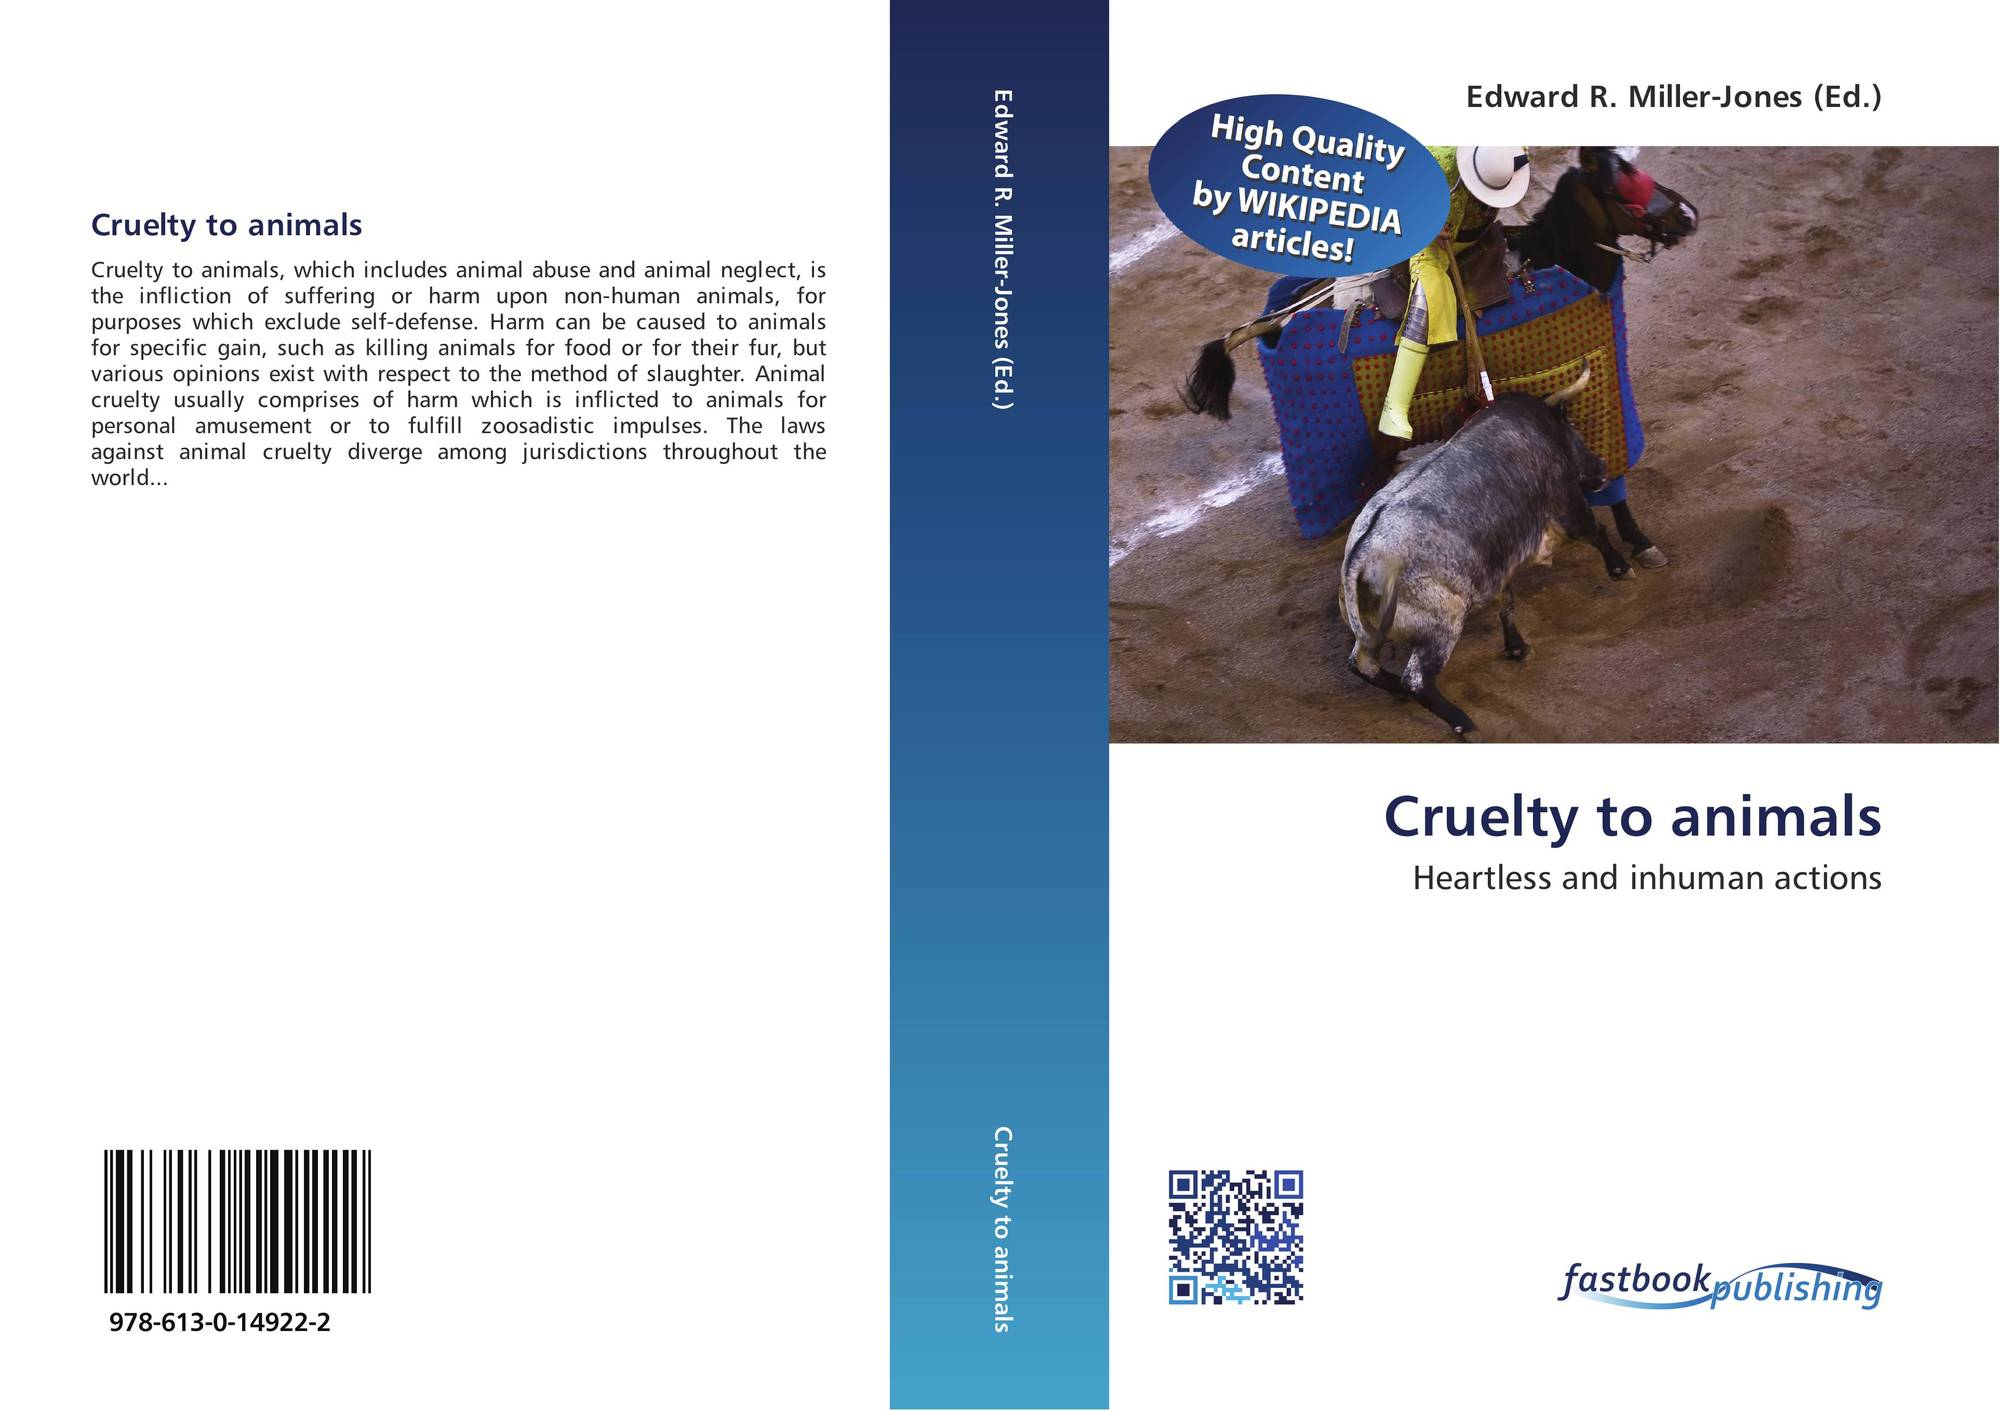 essay animals cruelty Persuasive speech on animal cruelty objecive: the objective of this speech is for each listener to be persuaded to consider voting on bills, props, etc that support more punishment for those who abuse animals - persuasive speech on animal cruelty.